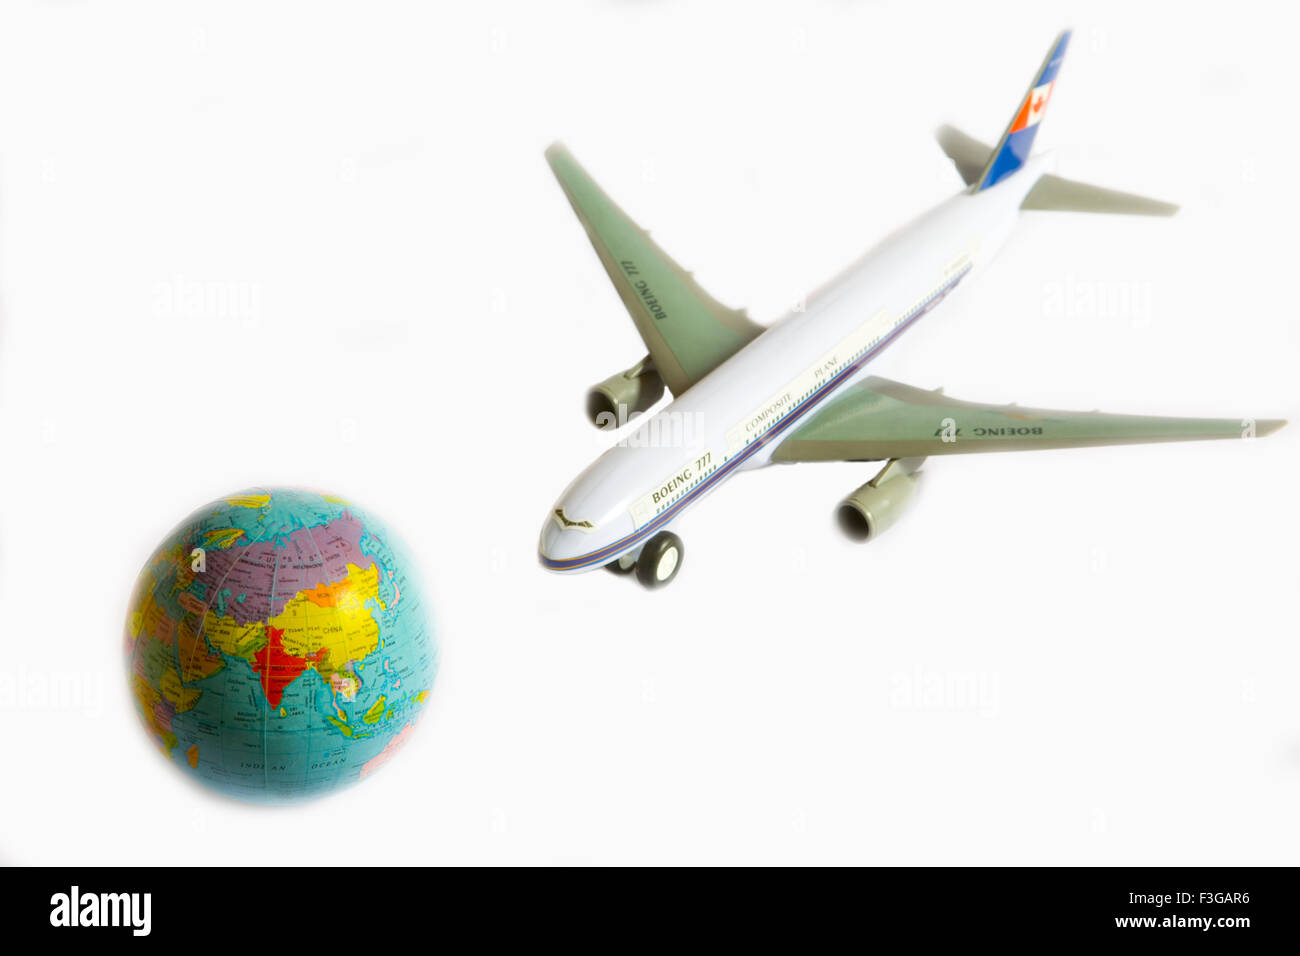 Toy aeroplane Boeing 777 and Globe on white background - Stock Image